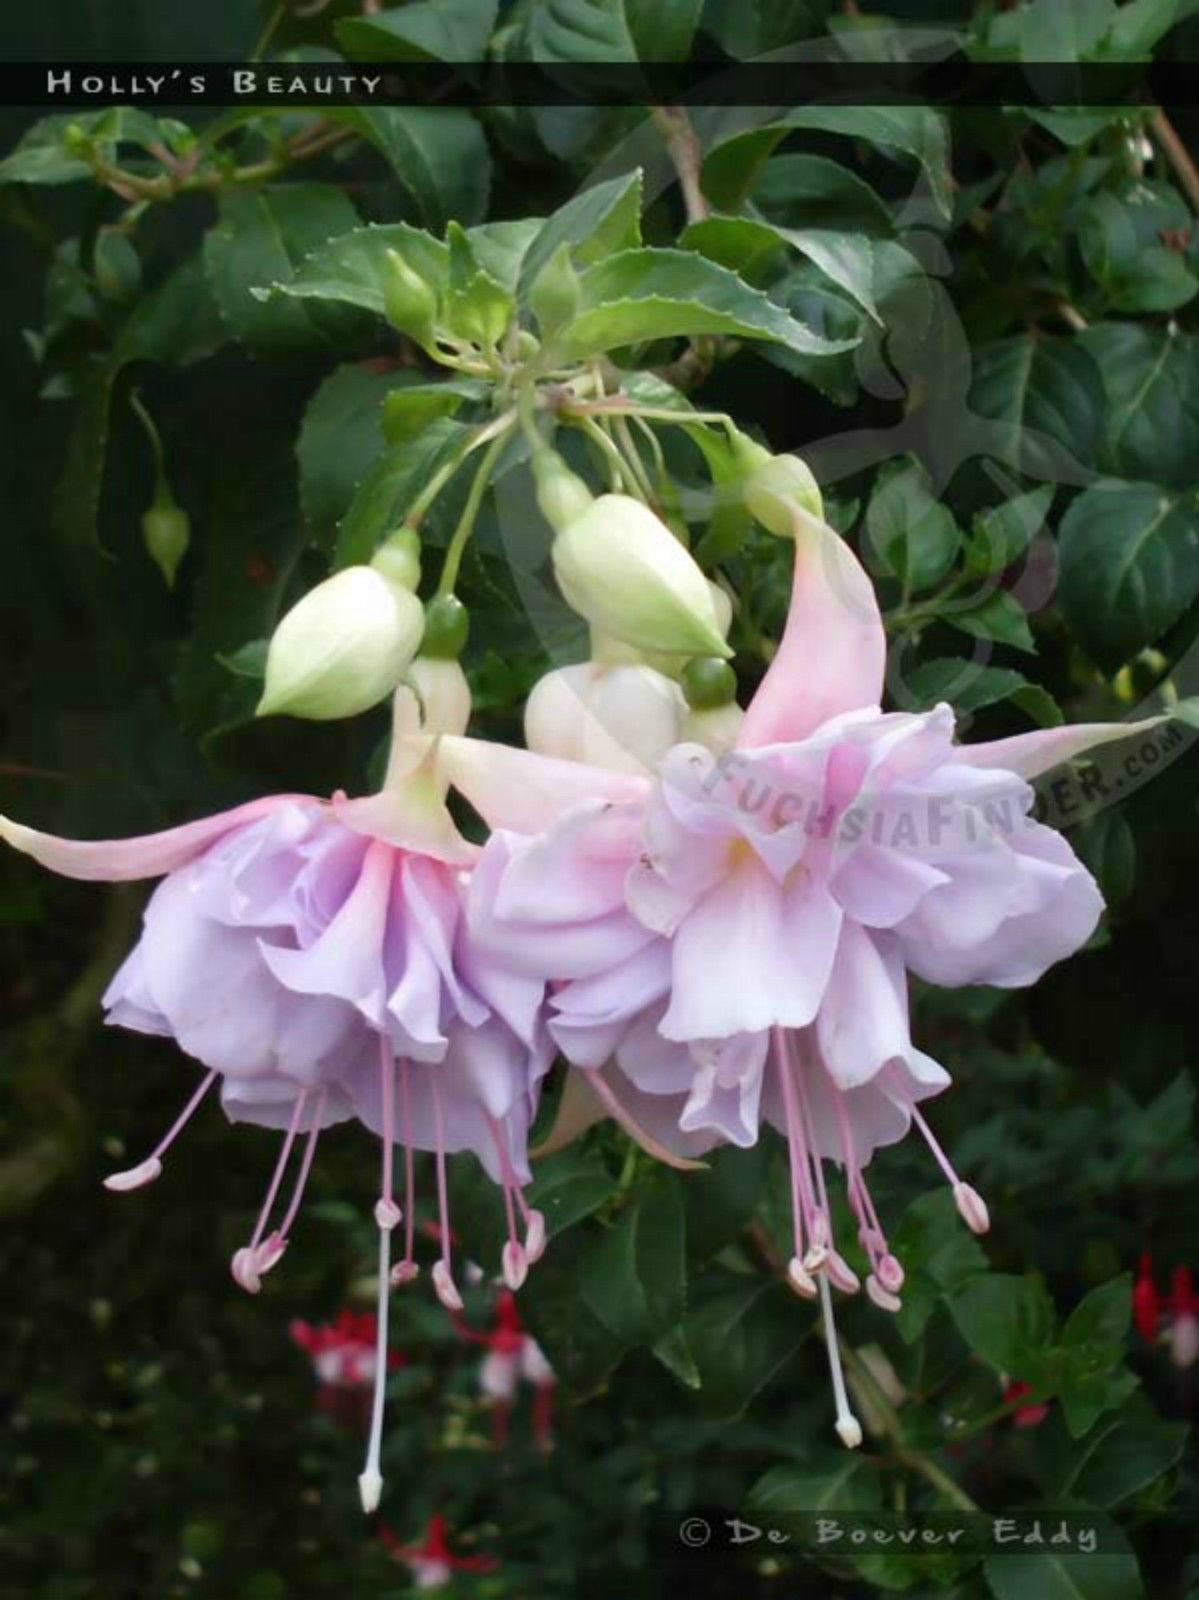 Details about Fuchsia Hollys Beauty & Gary Rhodes